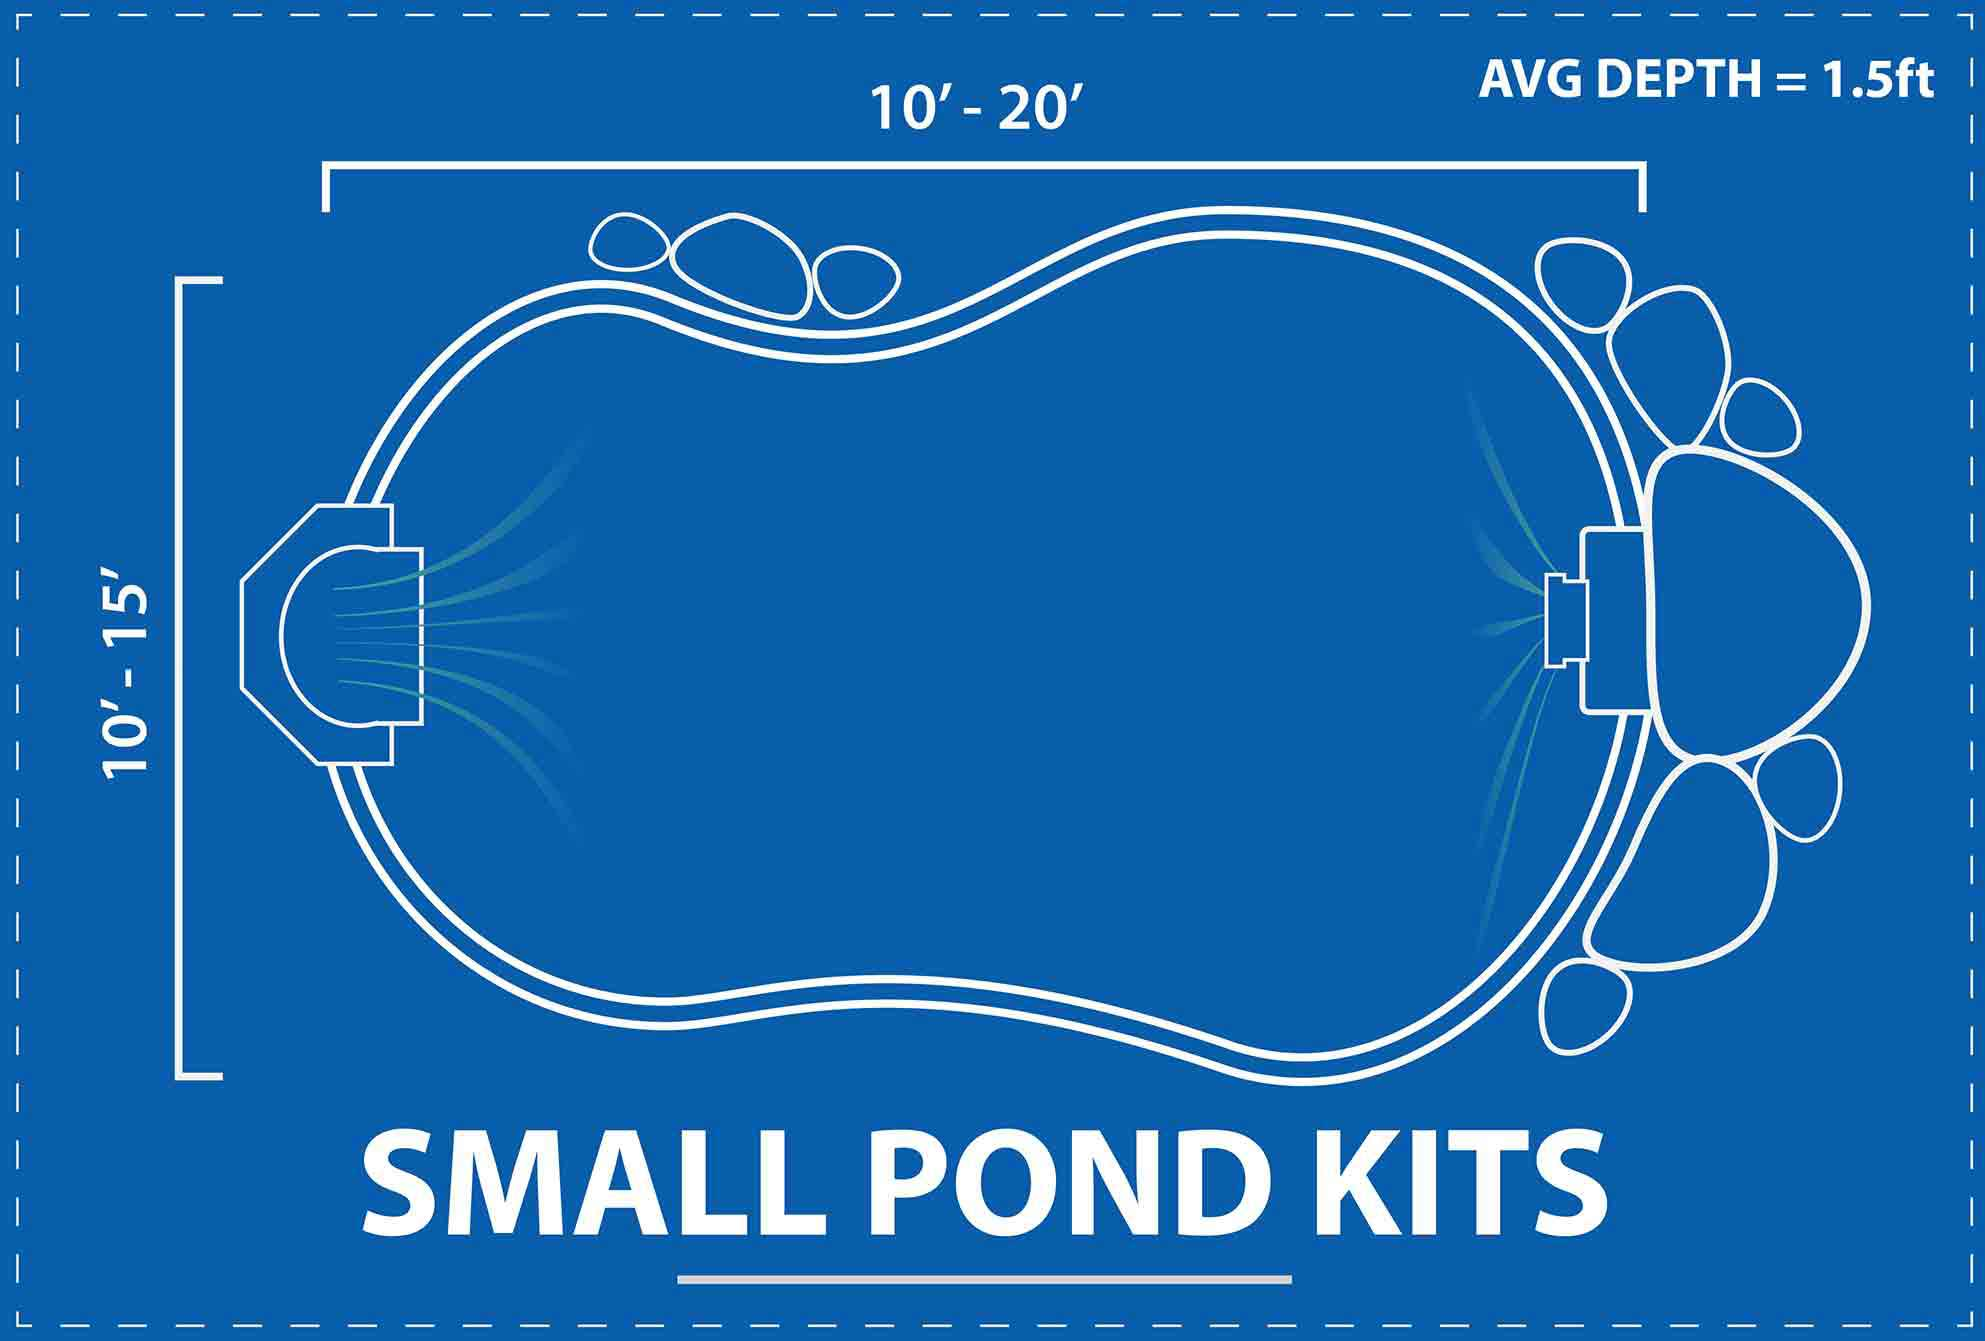 Small Pond Kits